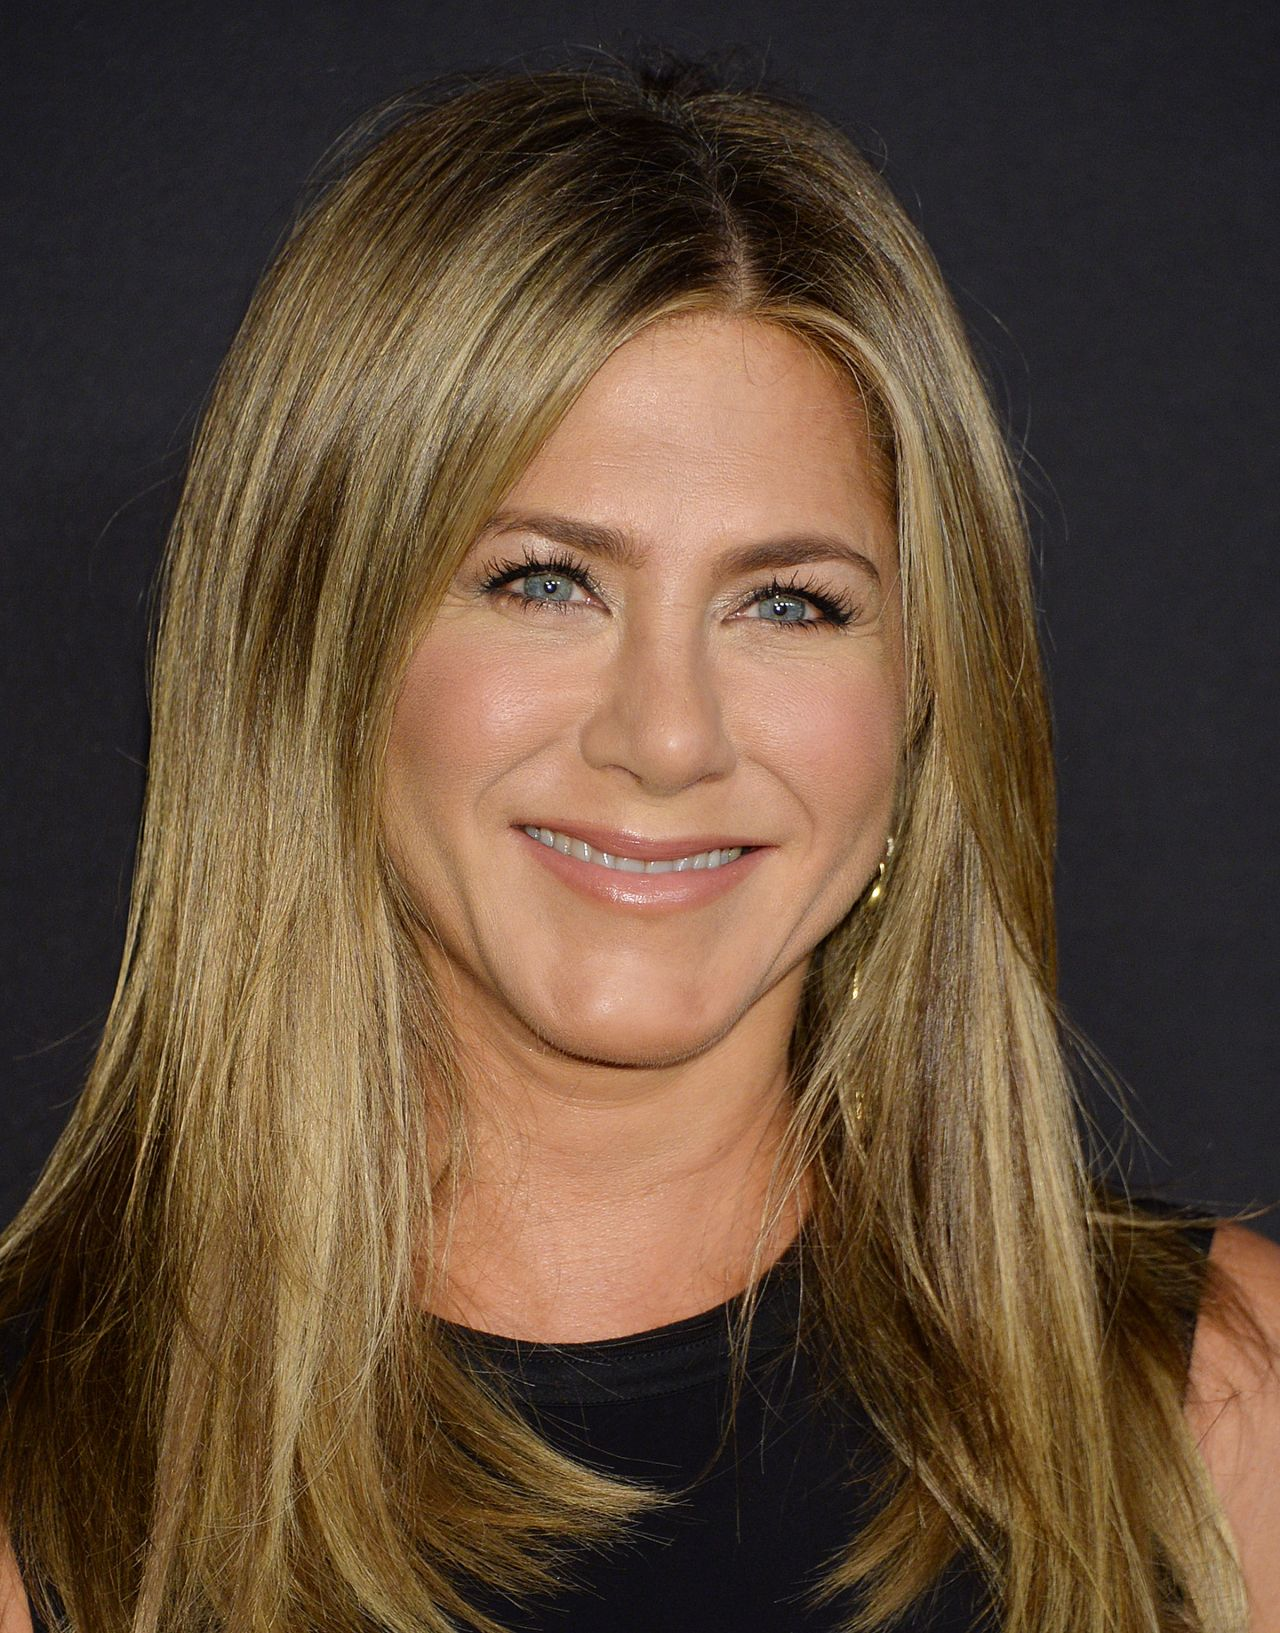 https://celebmafia.com/wp-content/uploads/2018/10/jennifer-aniston-2018-instyle-awards-8.jpg